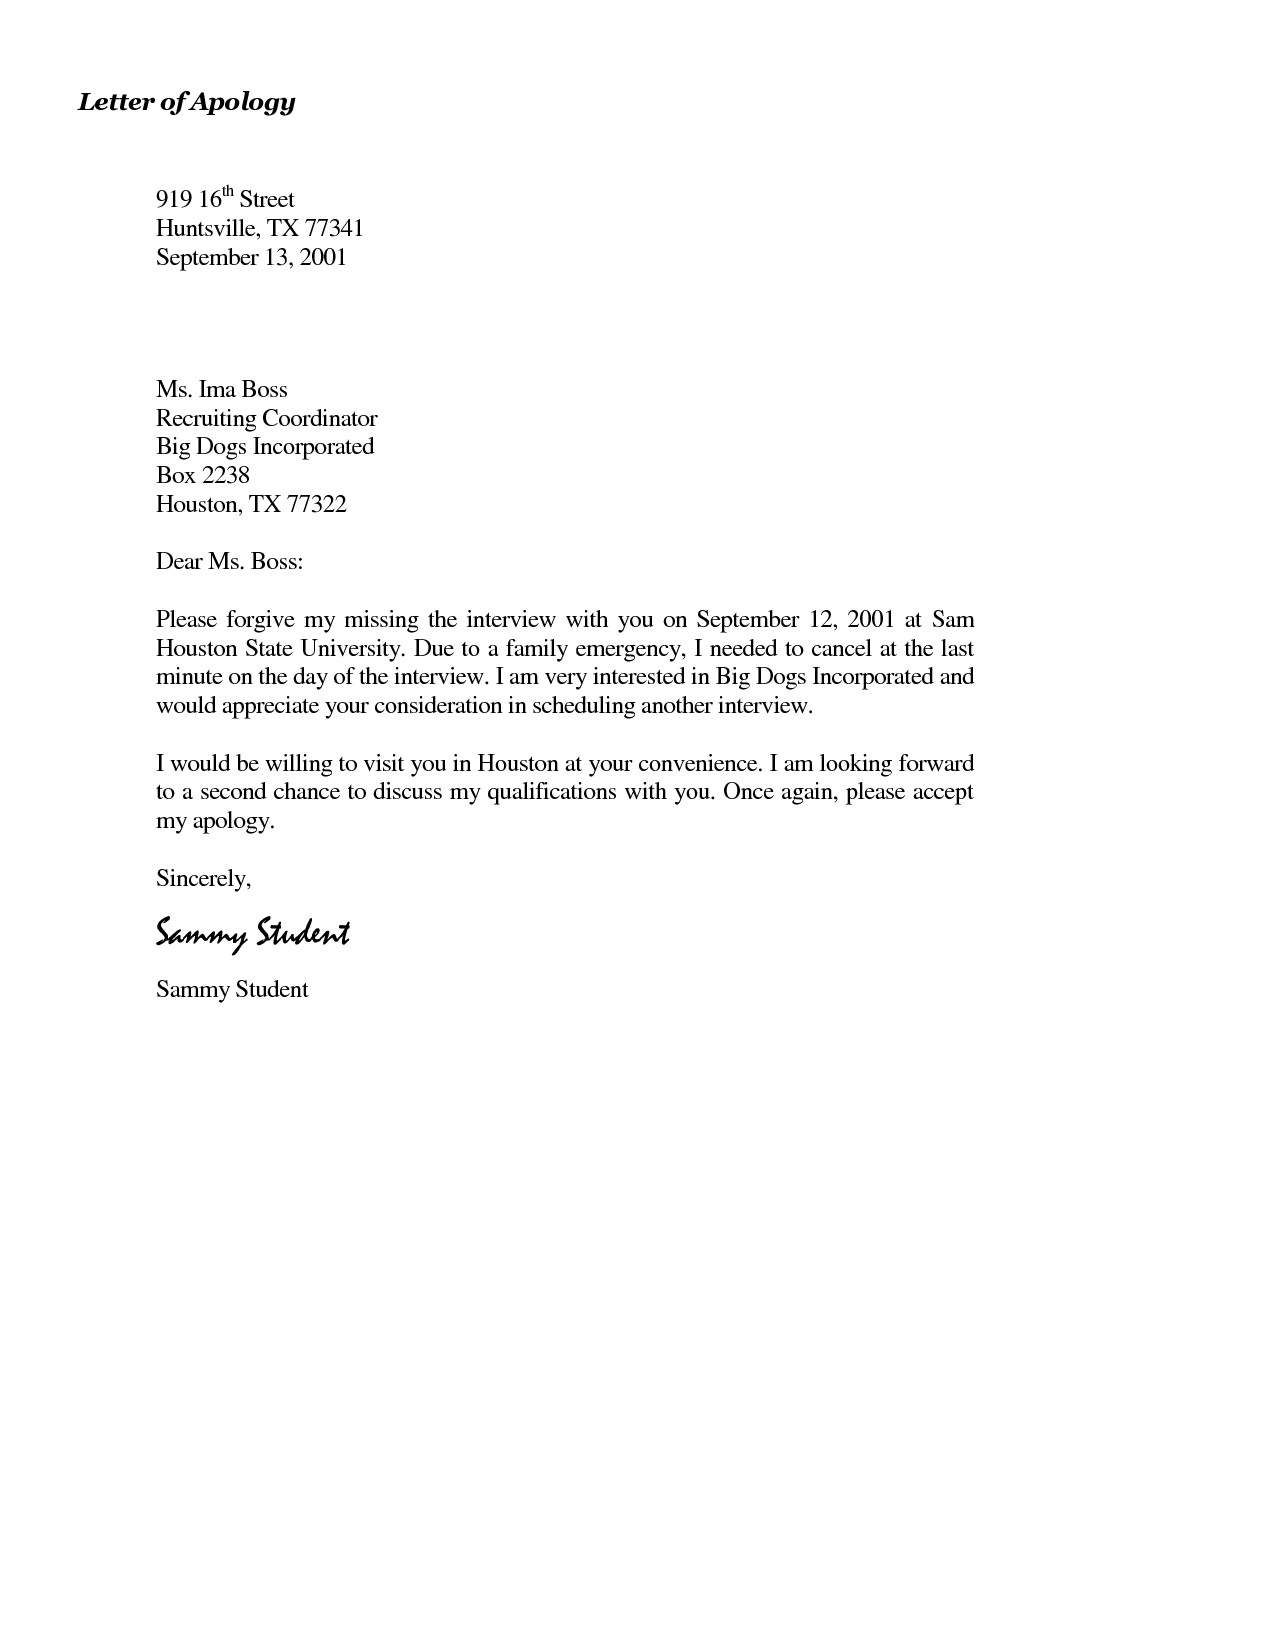 Apology Letter to Boss Simple formal Letter Of Apology to Boss with 2 Paragraph